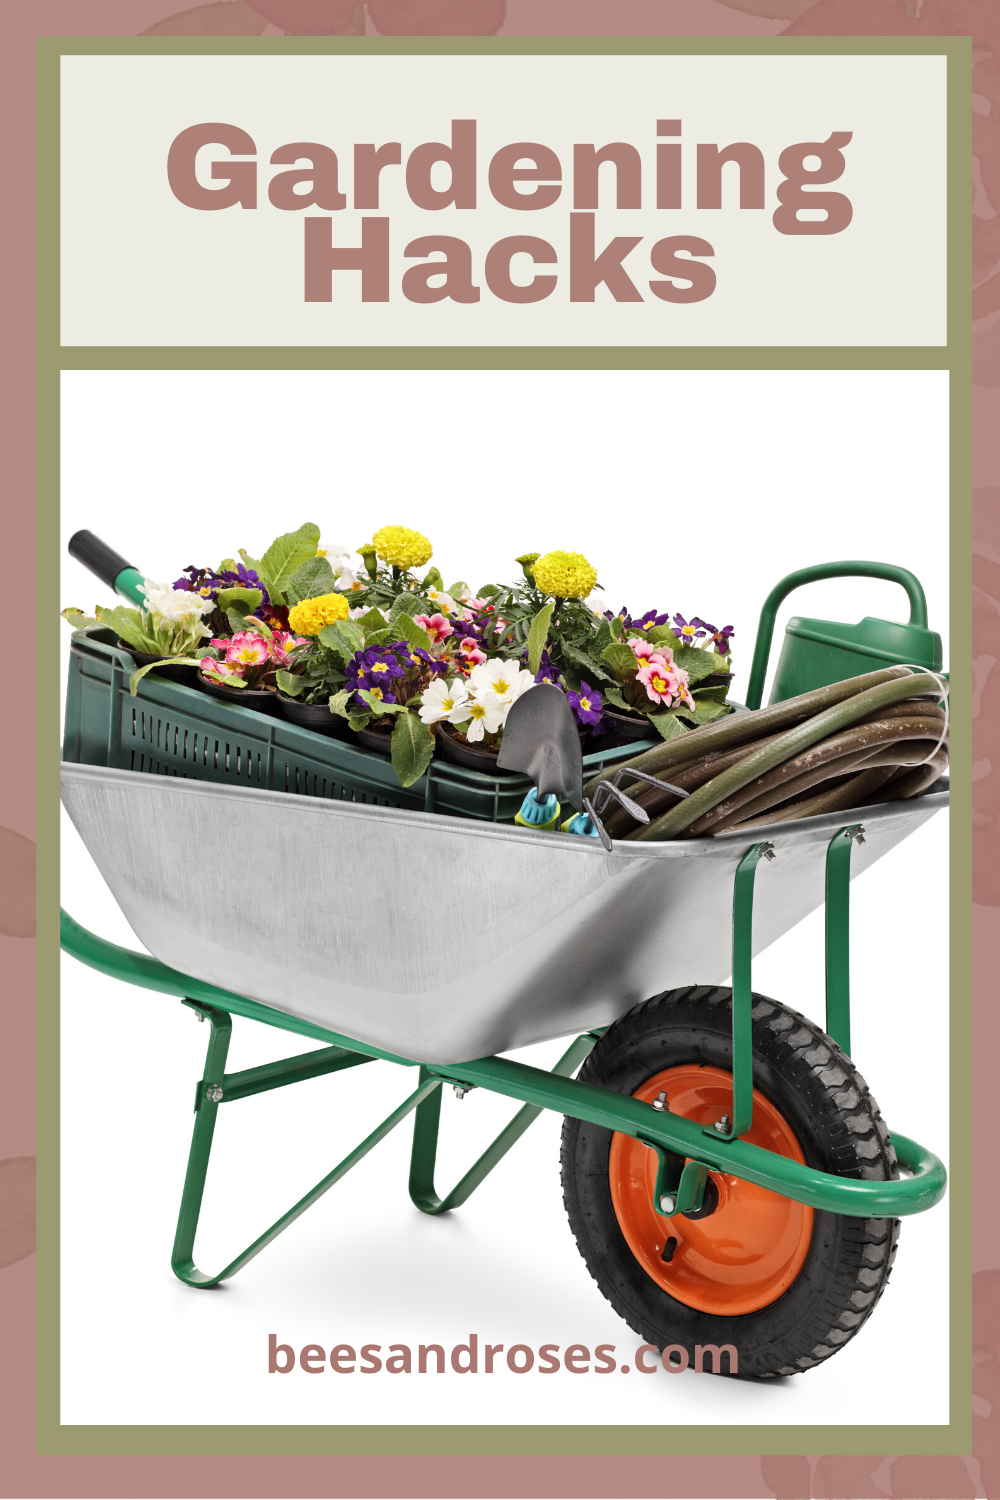 As most gardeners know, gardening requires a lot of knowledge in many subjects, but it doesn't hurt to know a few gardening hacks as well. Keep reading to up your gardening game with these hacks. #gardeninghacks #Gardeningtips #beesandrosesblog